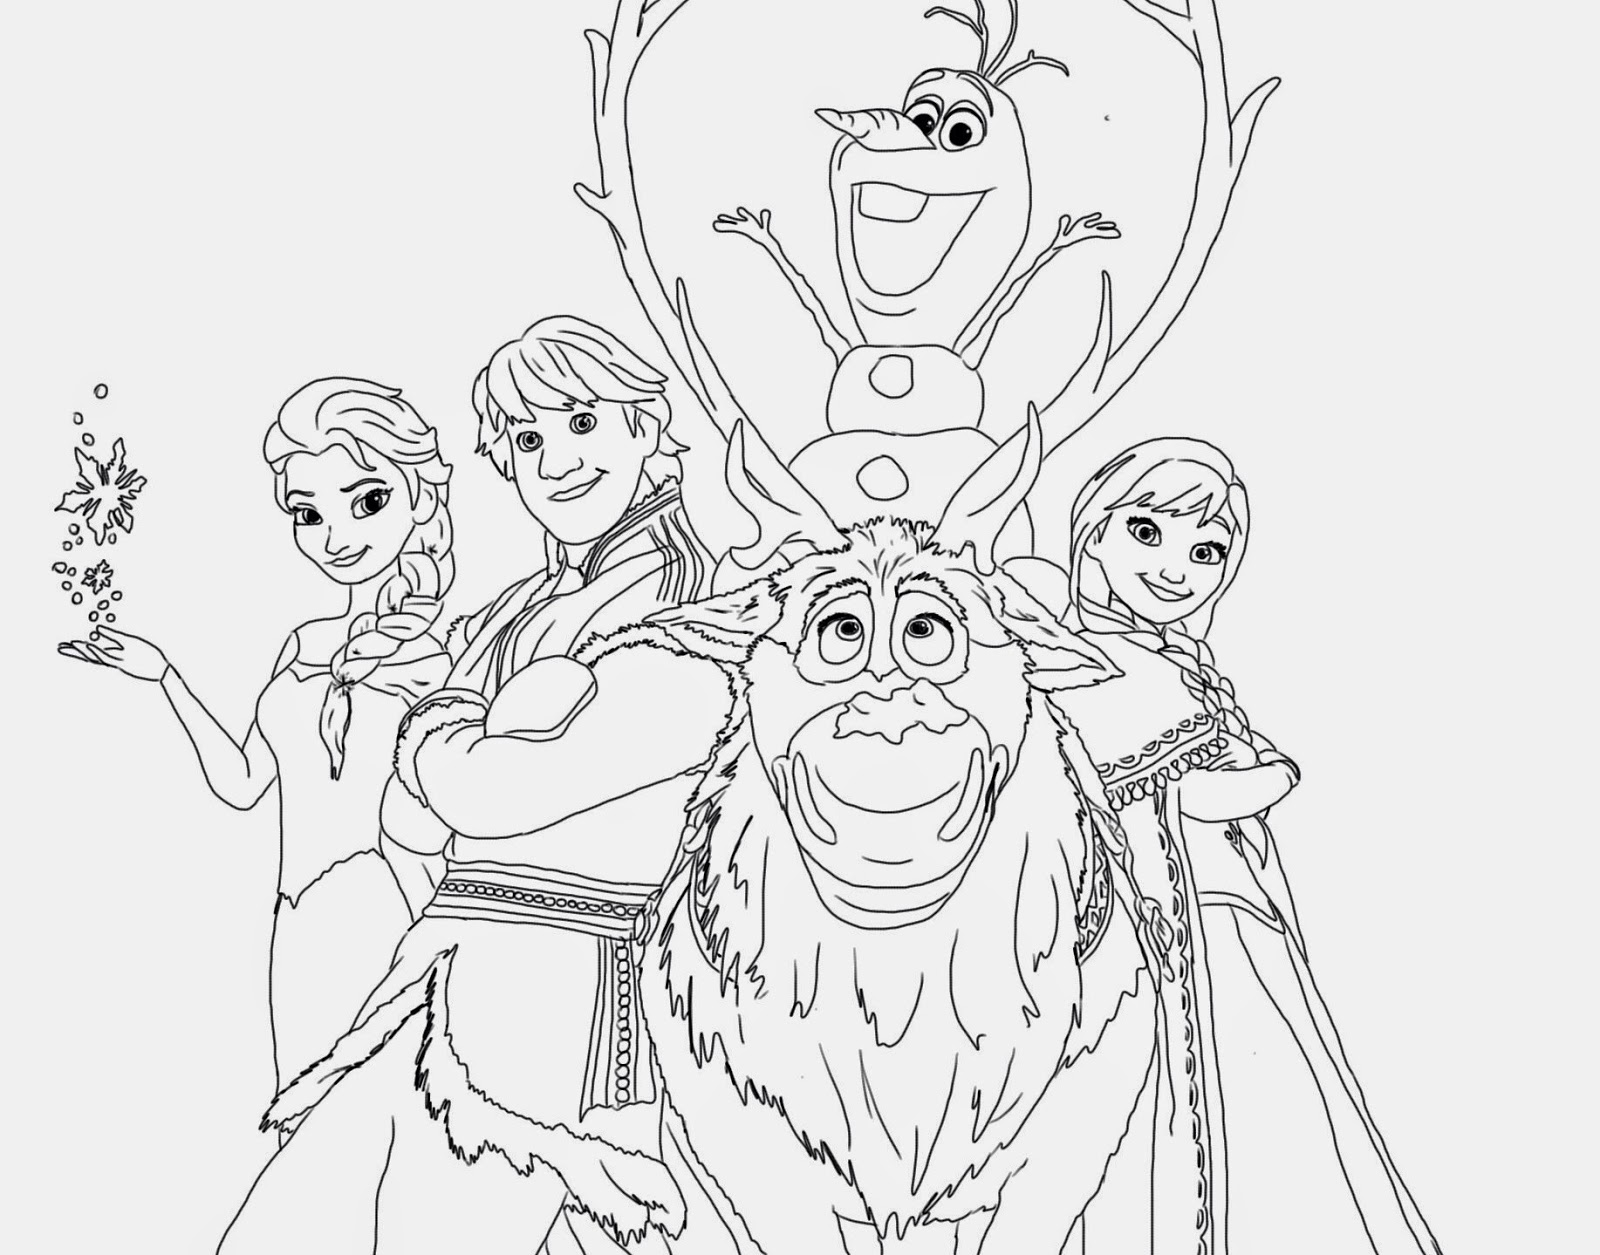 Coloring pages for frozen printable - Free Disney Frozen Printable Activities Coloring Pages Frozen Coloring Pages Printable Free